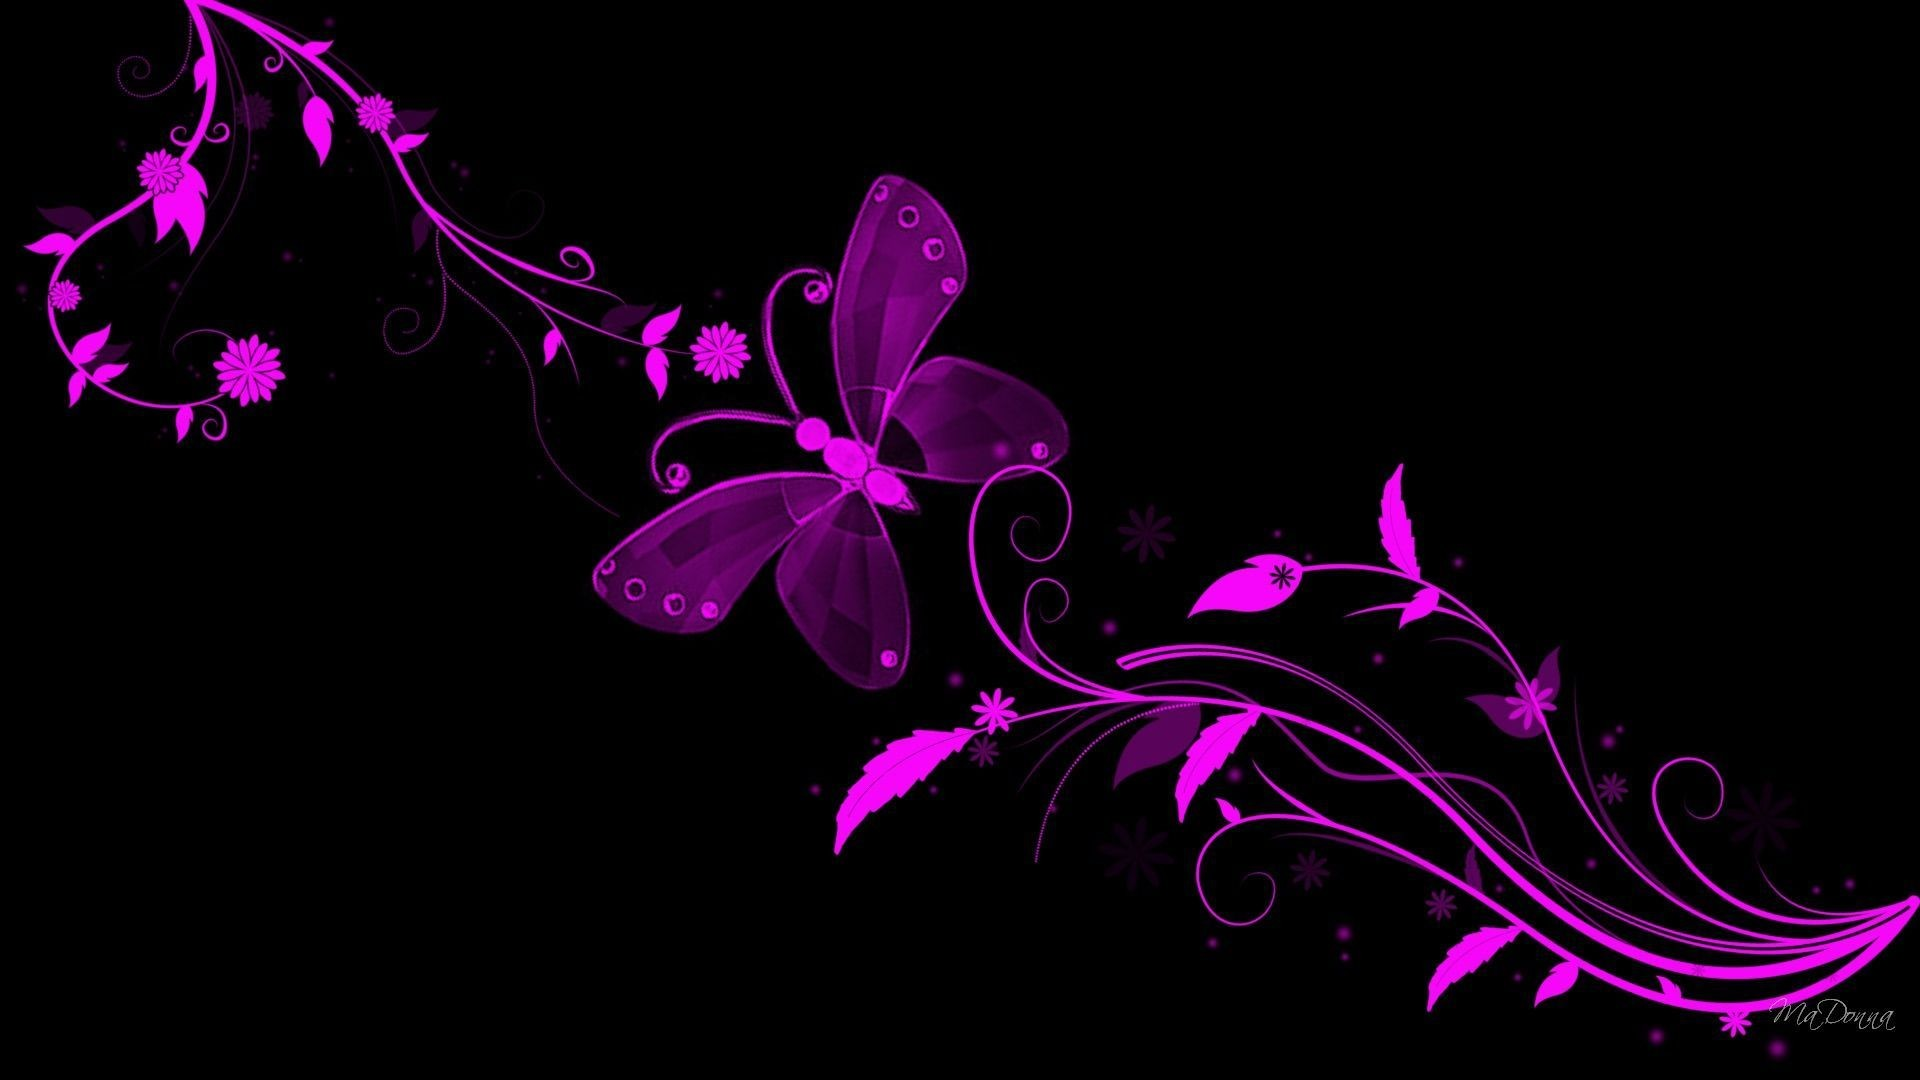 Tags: Black Purple. Category: Backgrounds